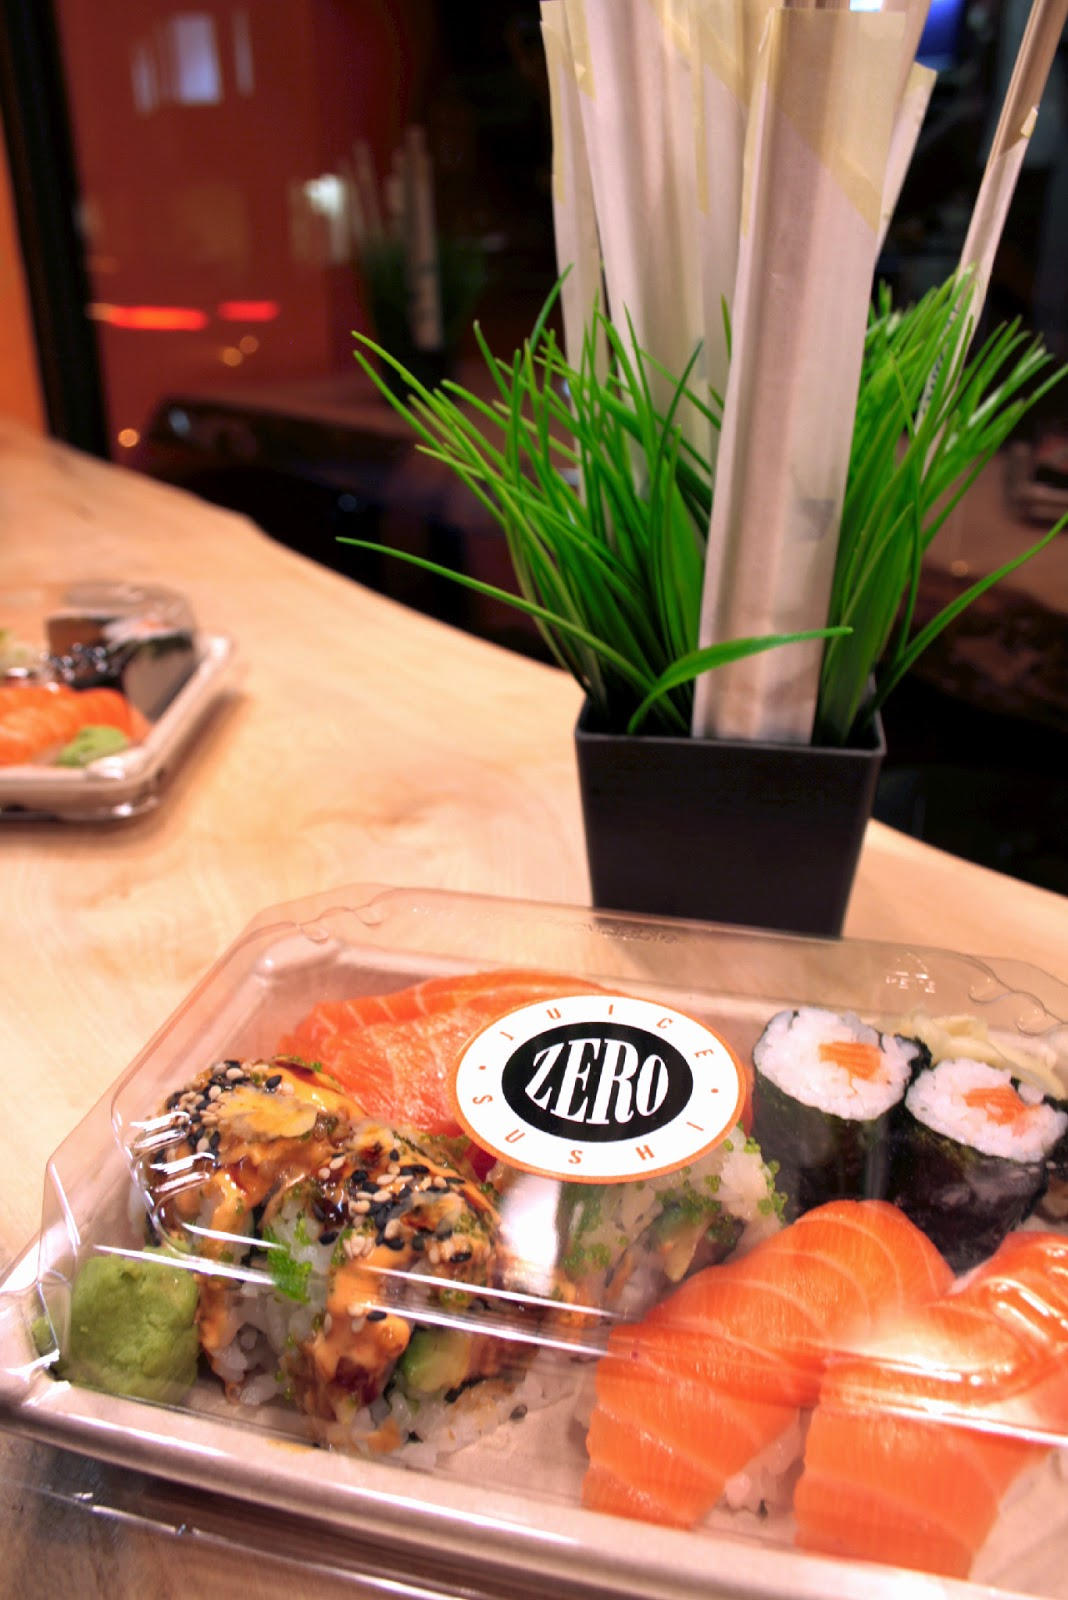 Zero sushi and juice - right in the centre of town!  They offer excellent quality sushi and fresh juice using the best quality ingredients